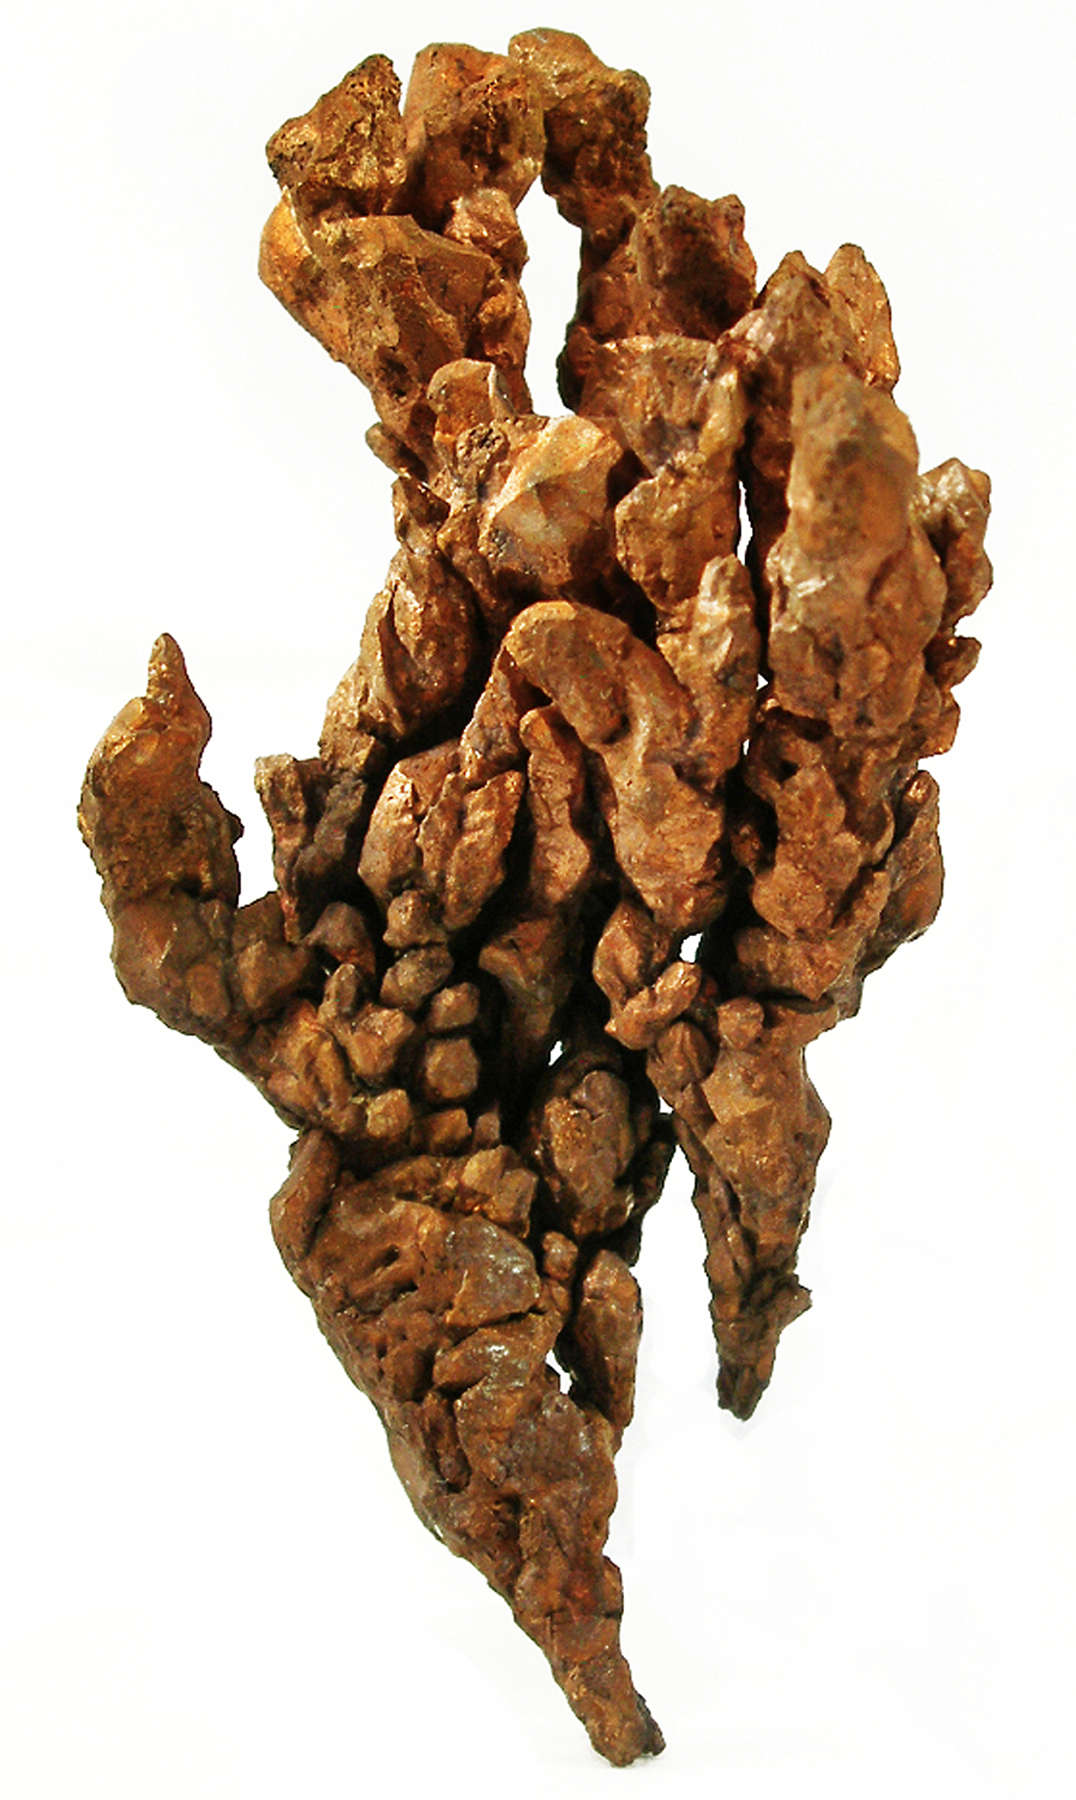 This thick branching dendritic copper specimen composed individual